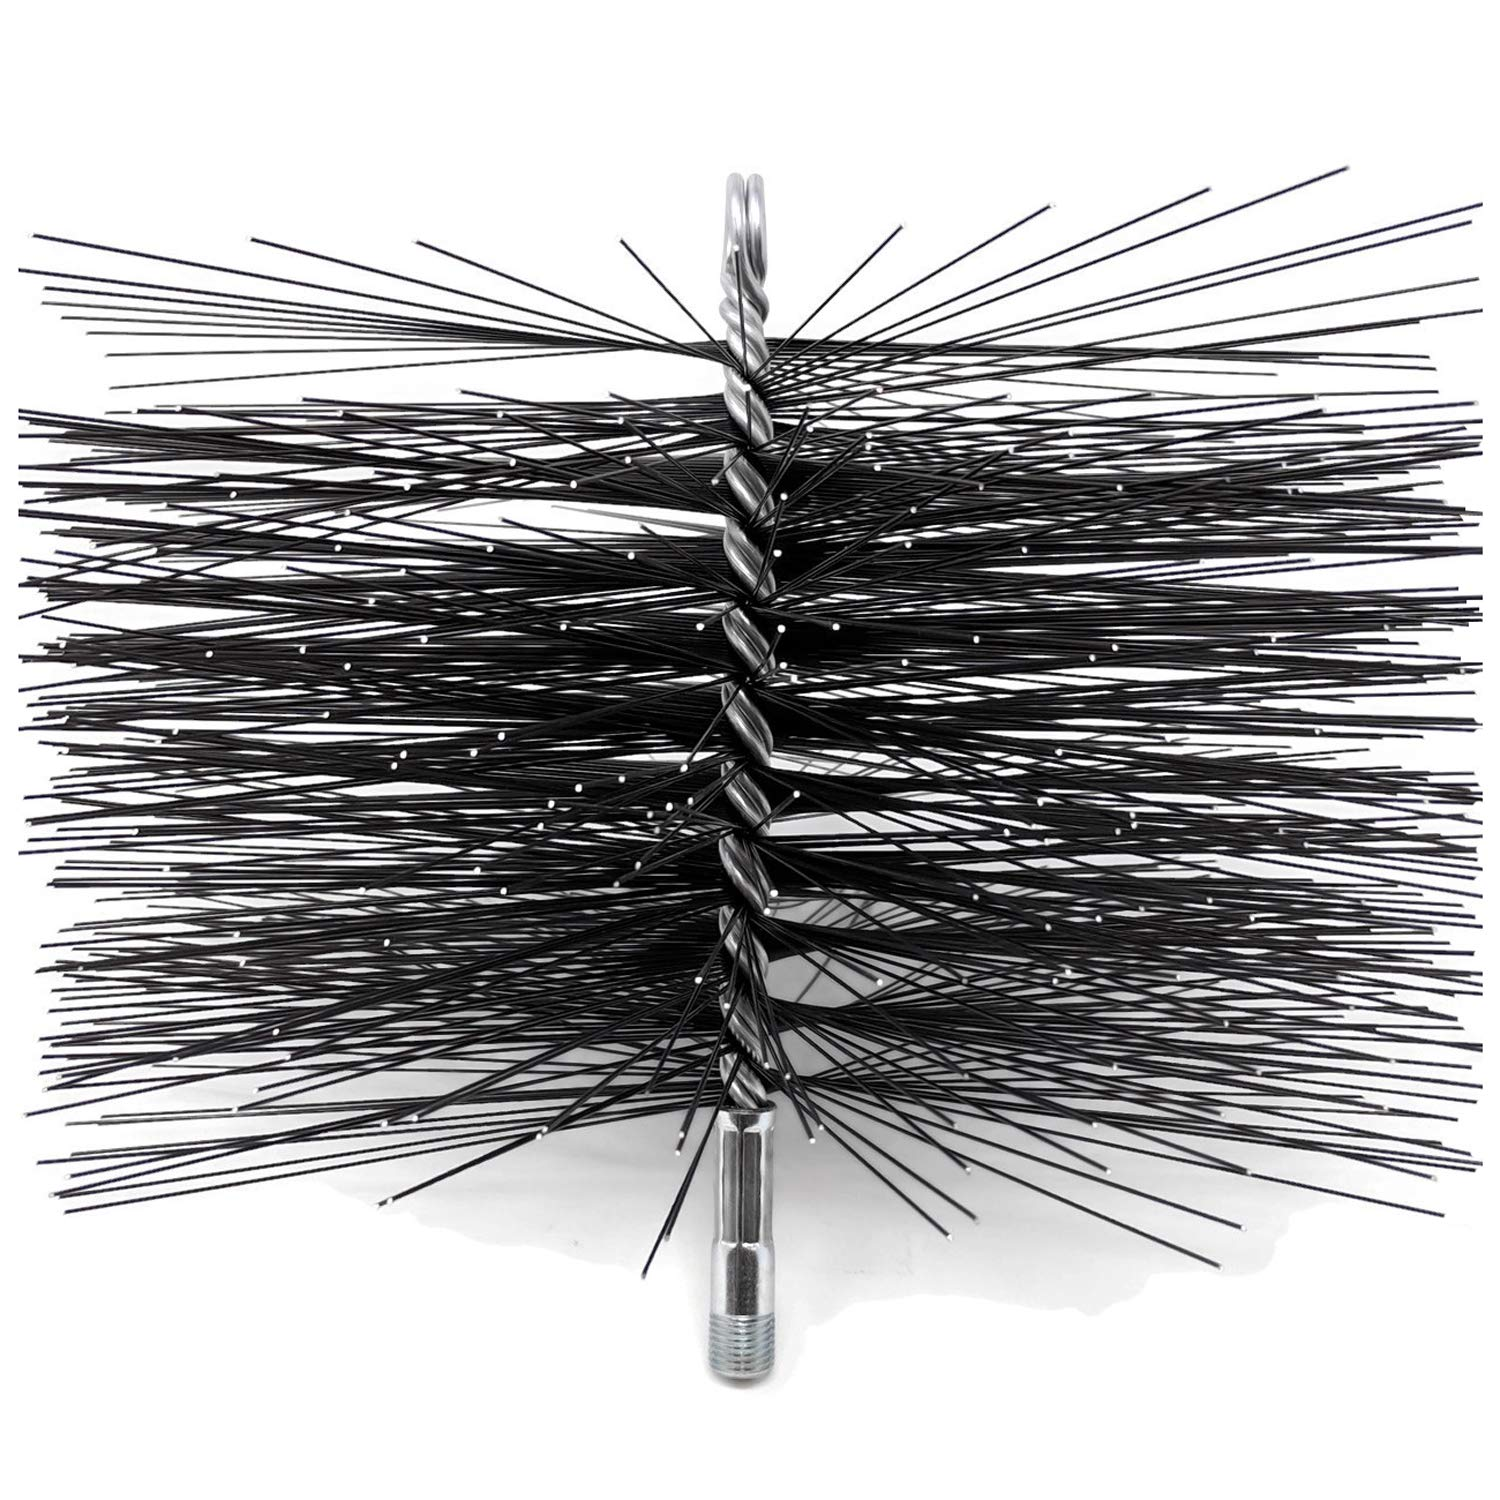 10-Inch Square Midwest Hearth Square Wire Chimney Cleaning Brush